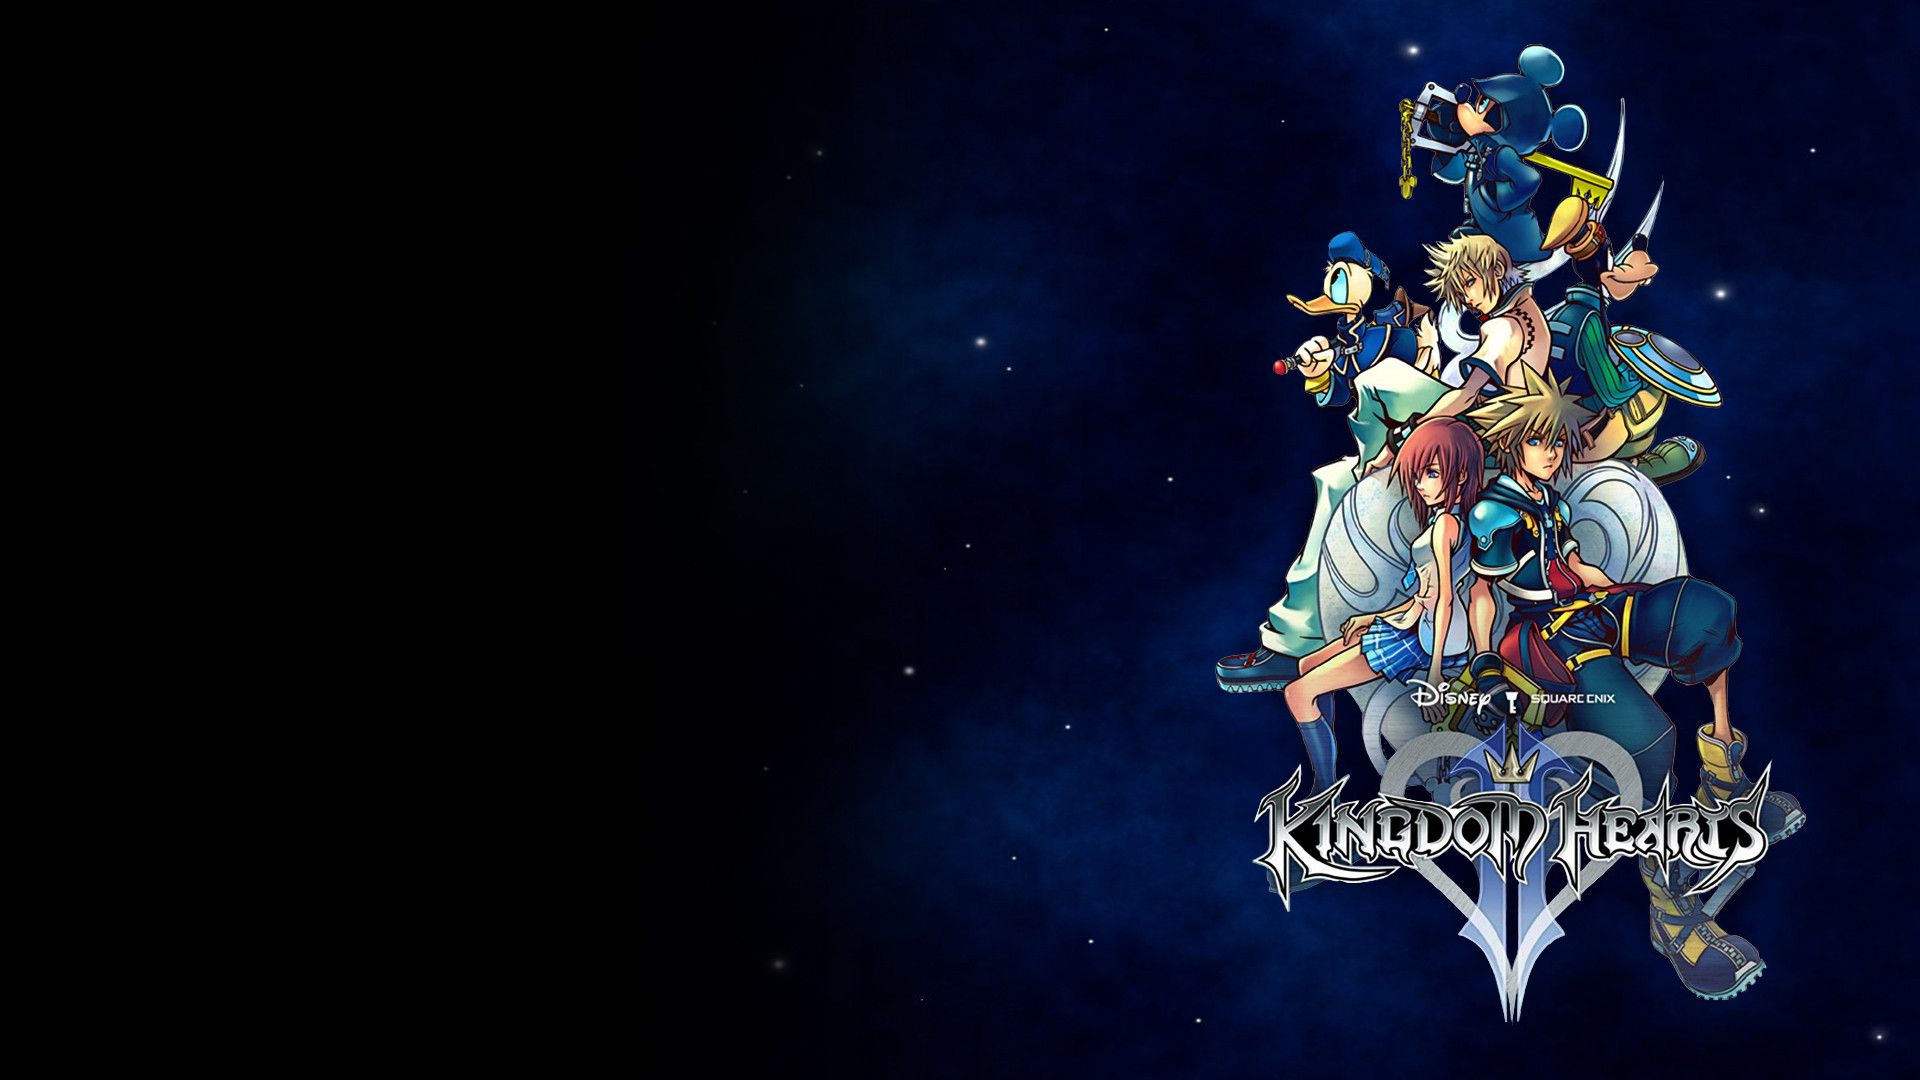 Kingdom hearts desktop wallpaper - SF Wallpaper